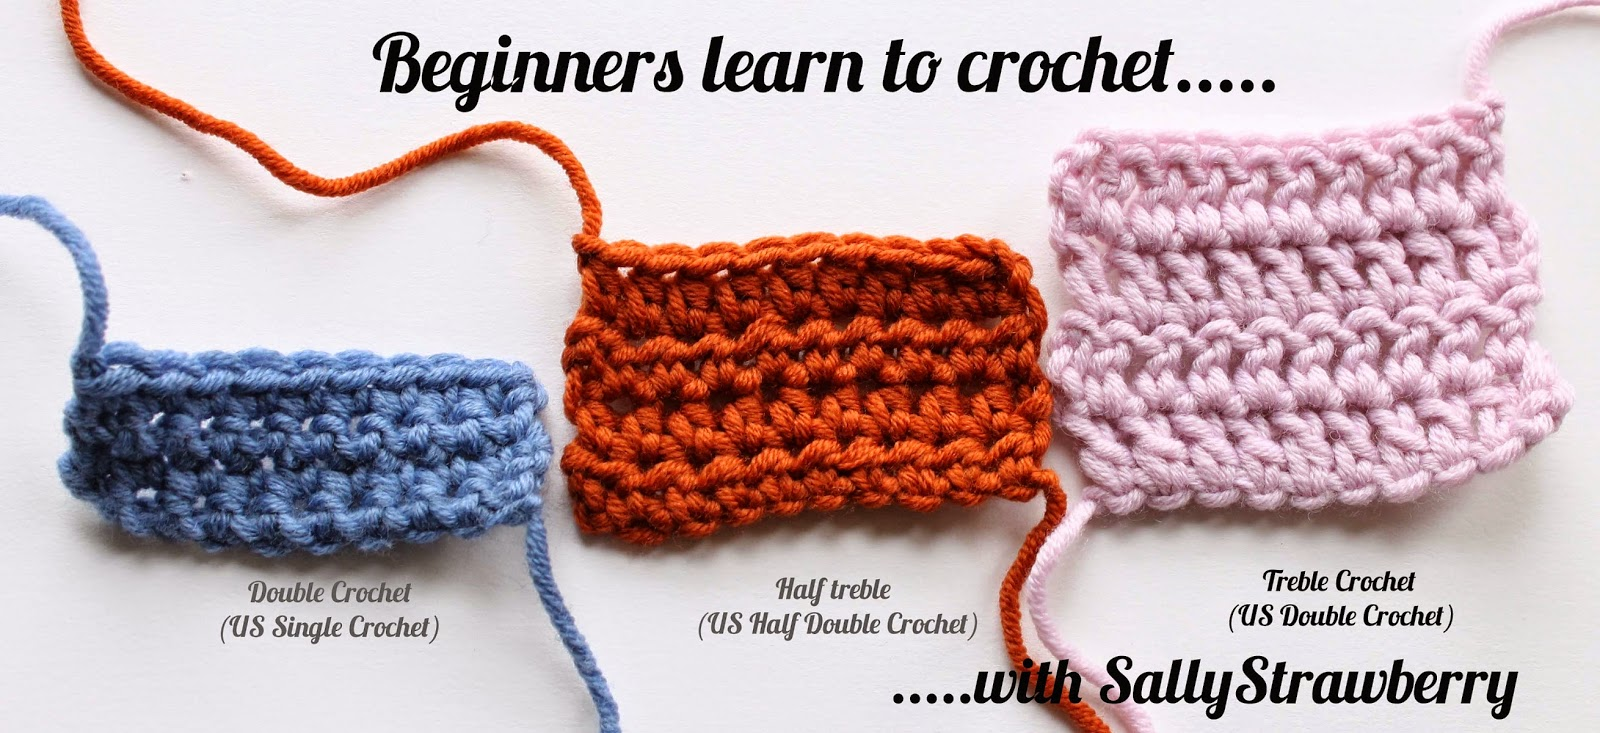 Crochet Stitches Uk Vs Us : Beginners+Learn+to+Crochet-+treble+Crochet+title+page.jpg